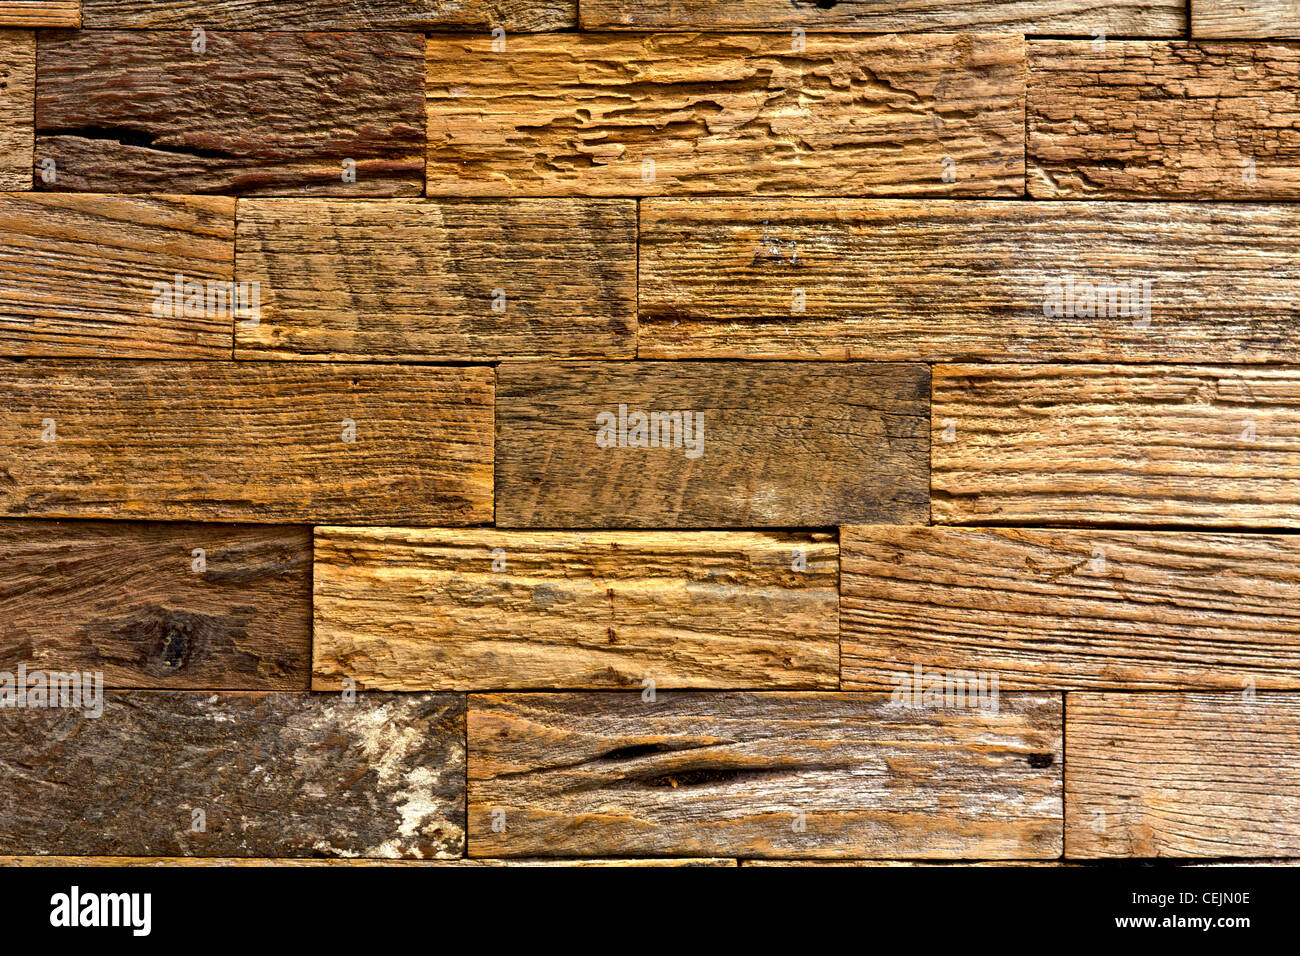 brown old wood texture with natural patterns for background - Stock Image